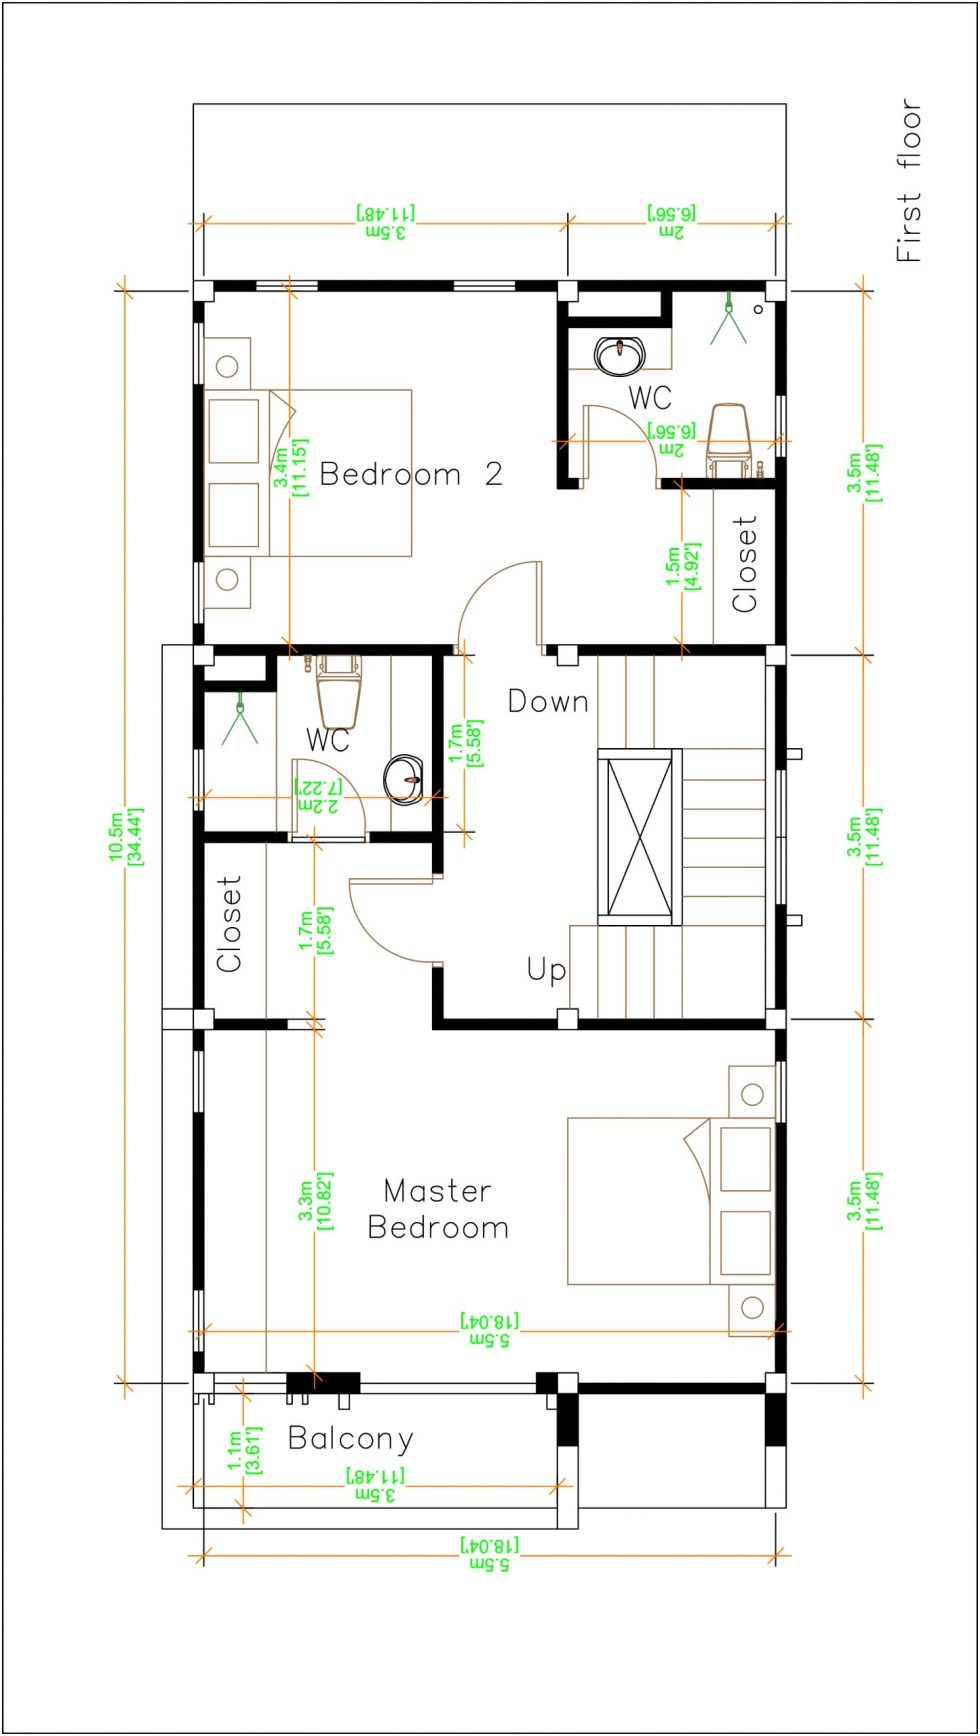 House Plans 5.5x10.5 with 4 bedrooms first floor